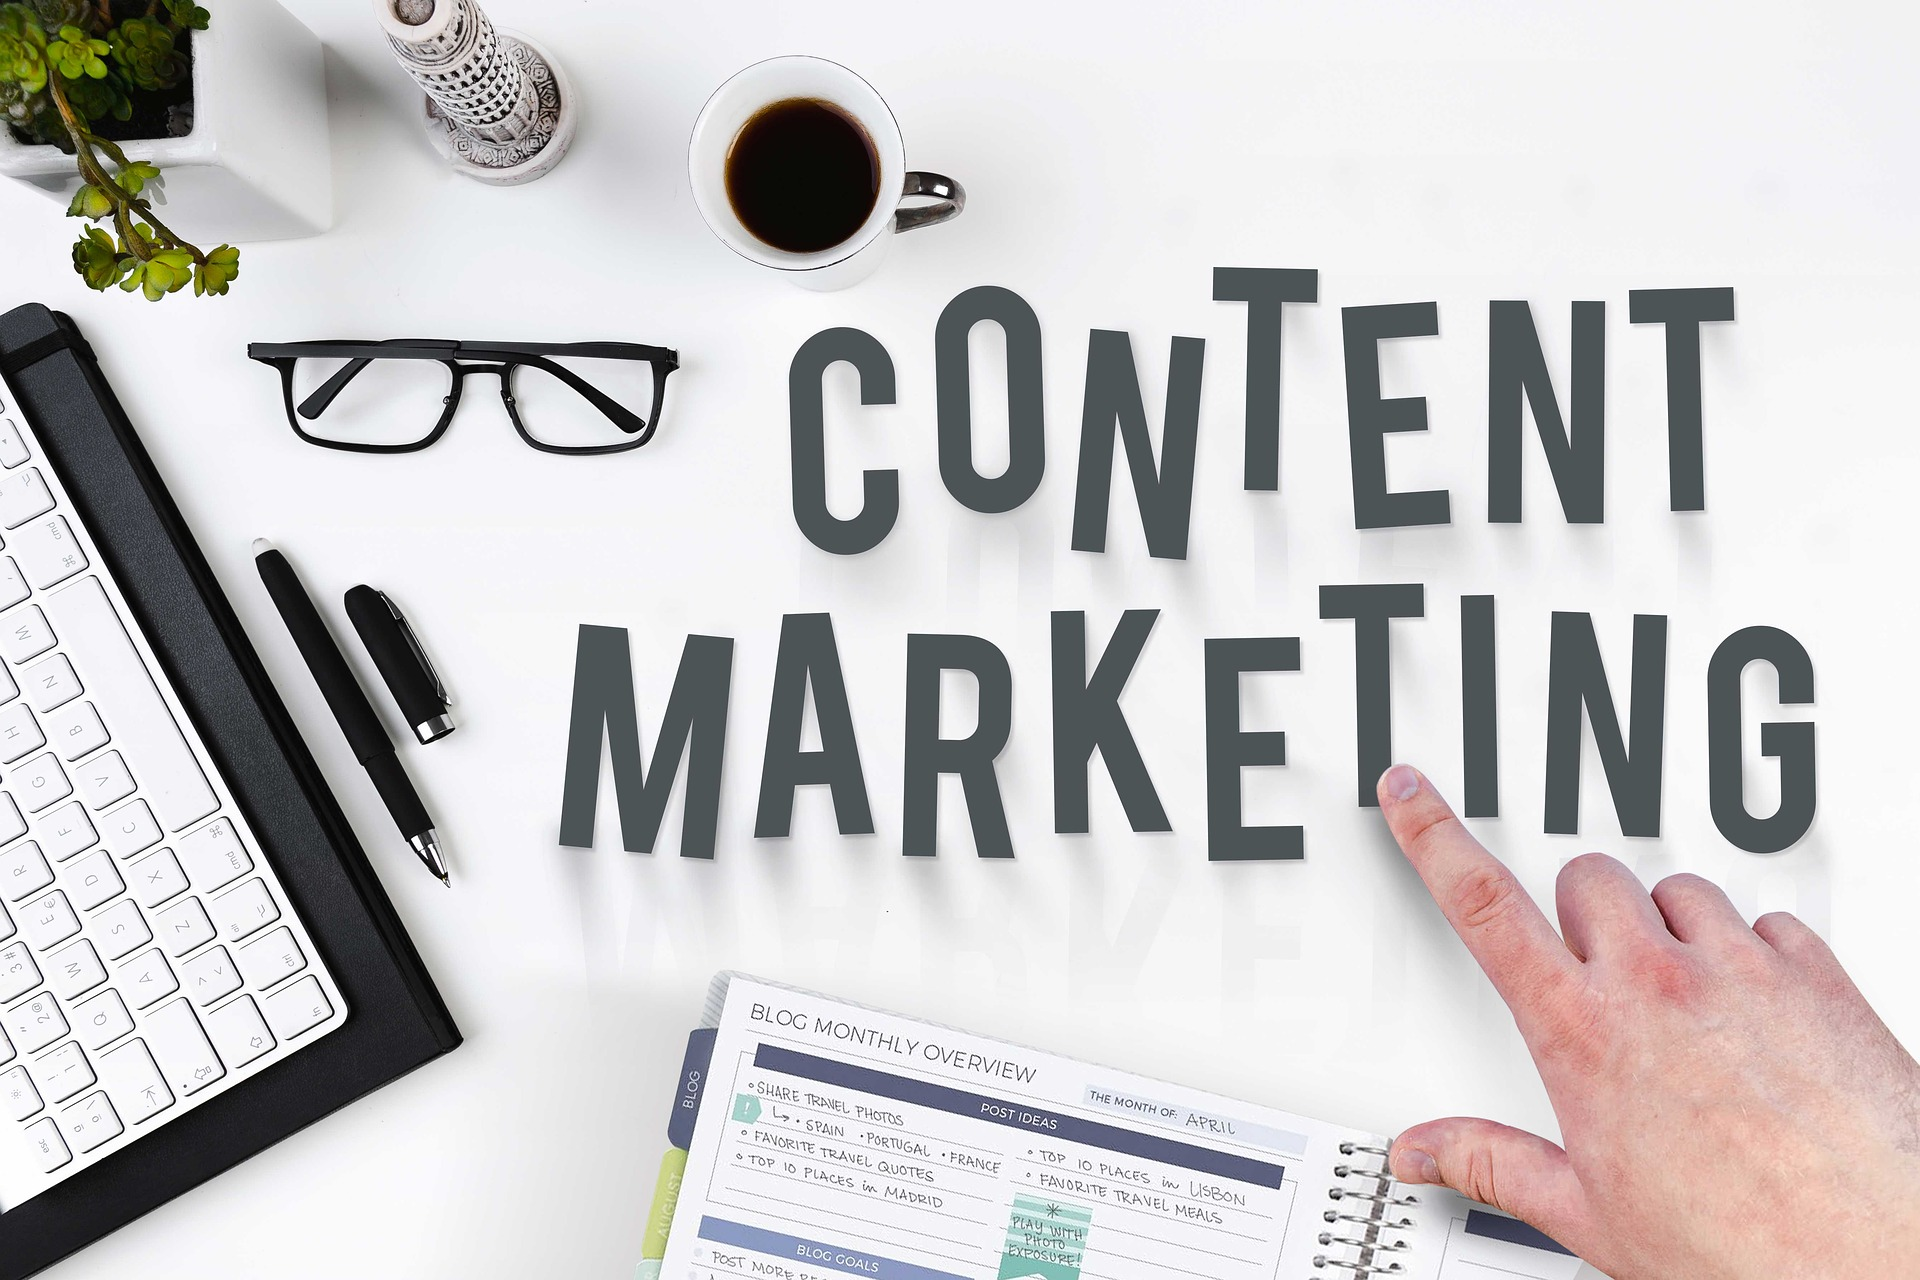 TRENDS IN CONTENT MARKETING 2020